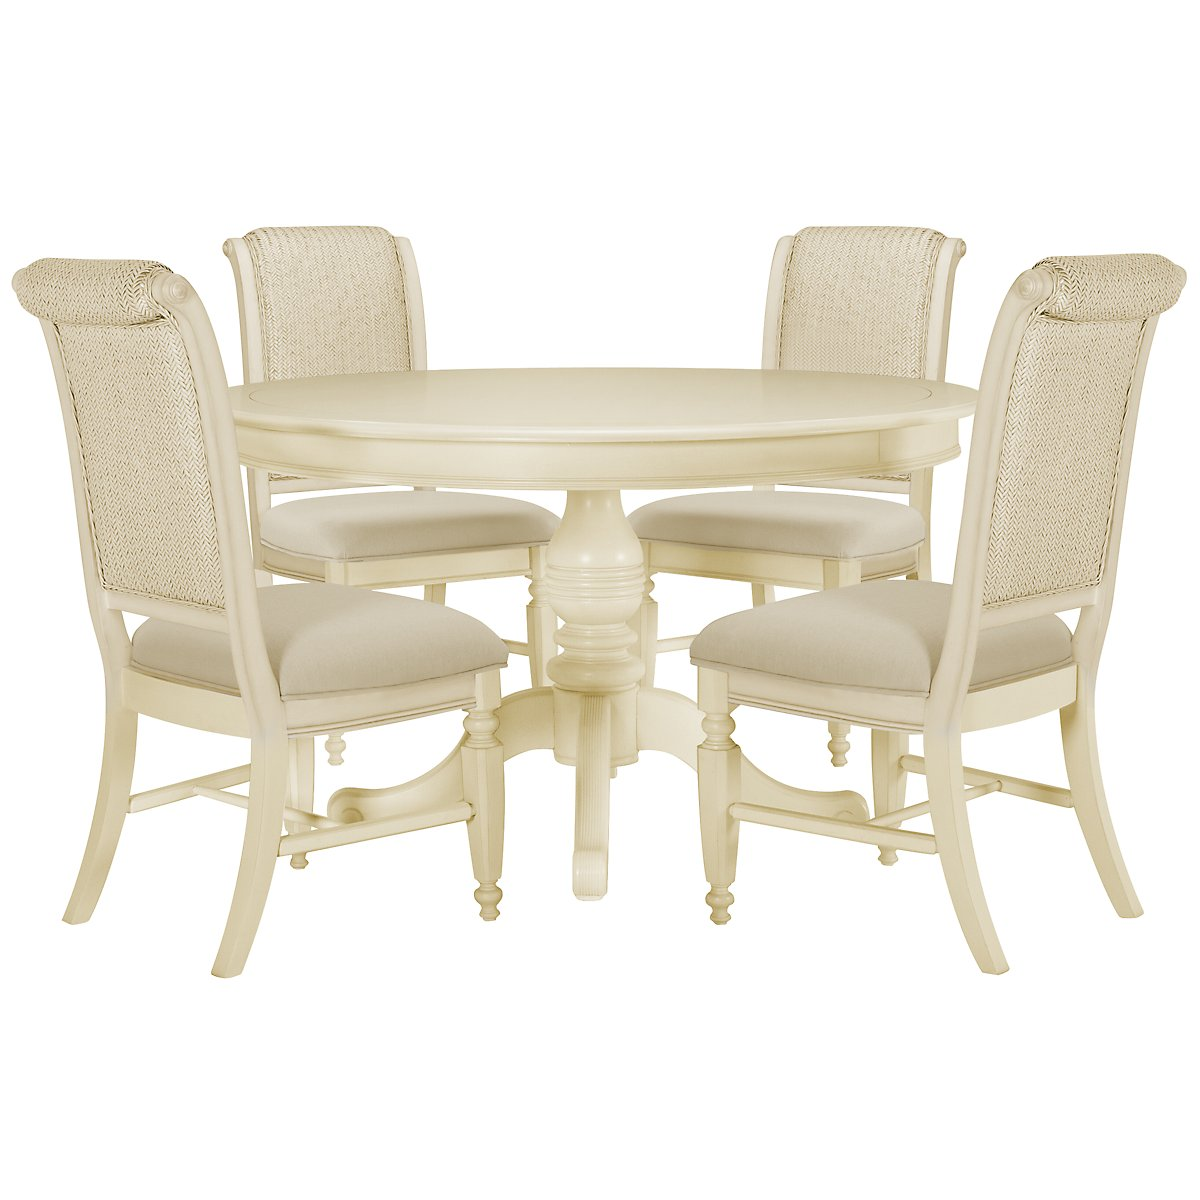 Claire White Round Table & 4 Woven Chairs